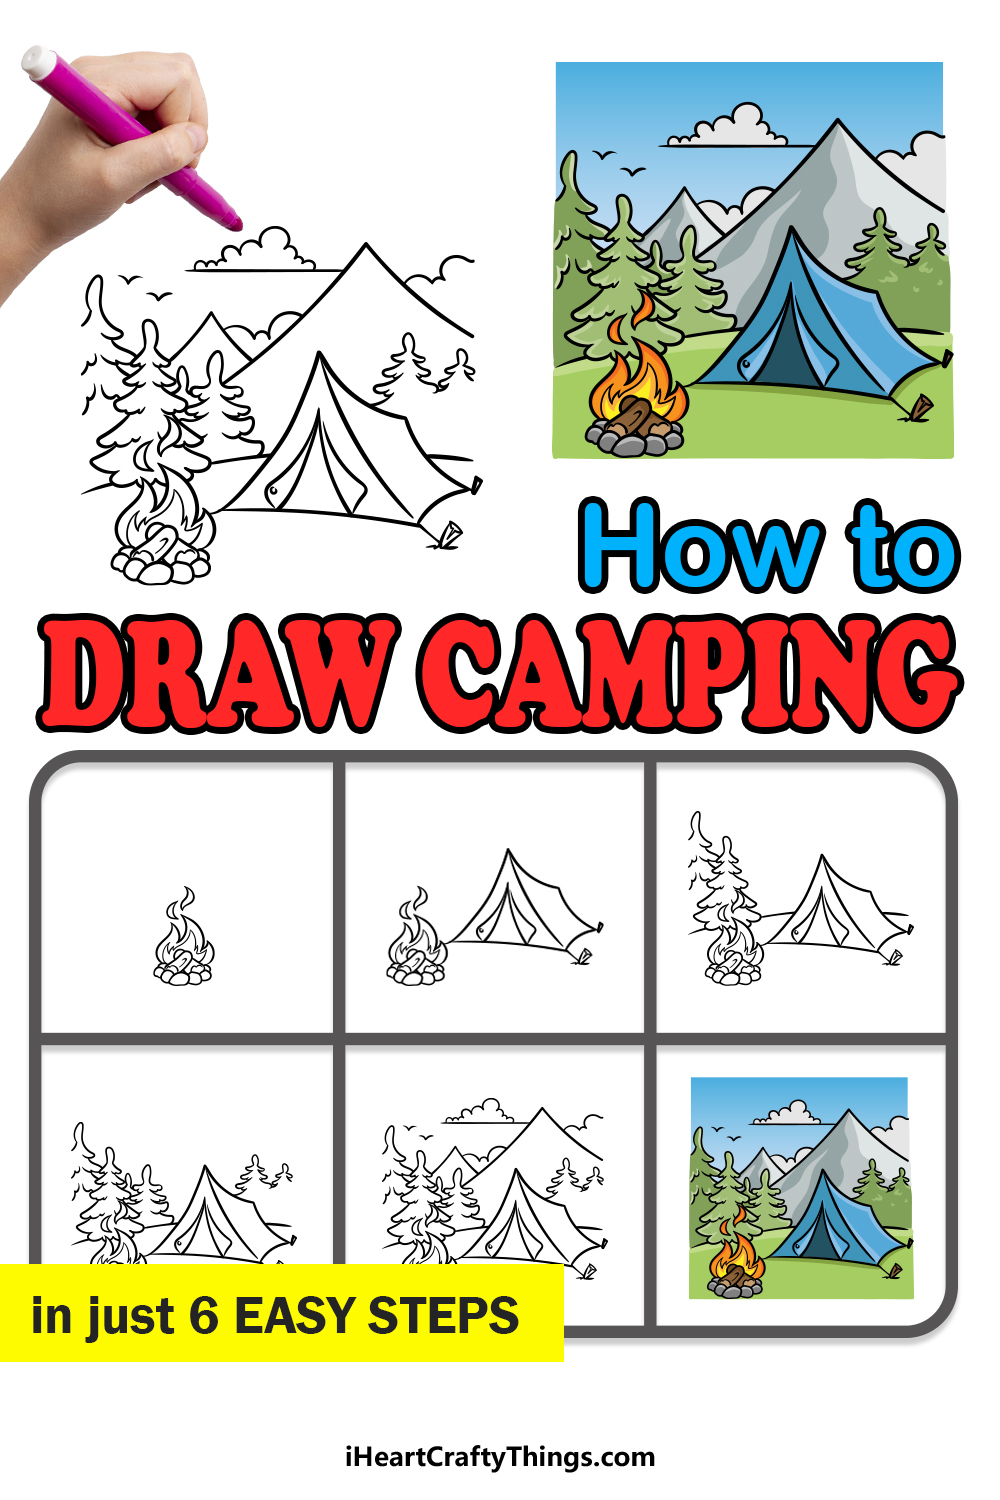 how to draw camping in 6 easy steps